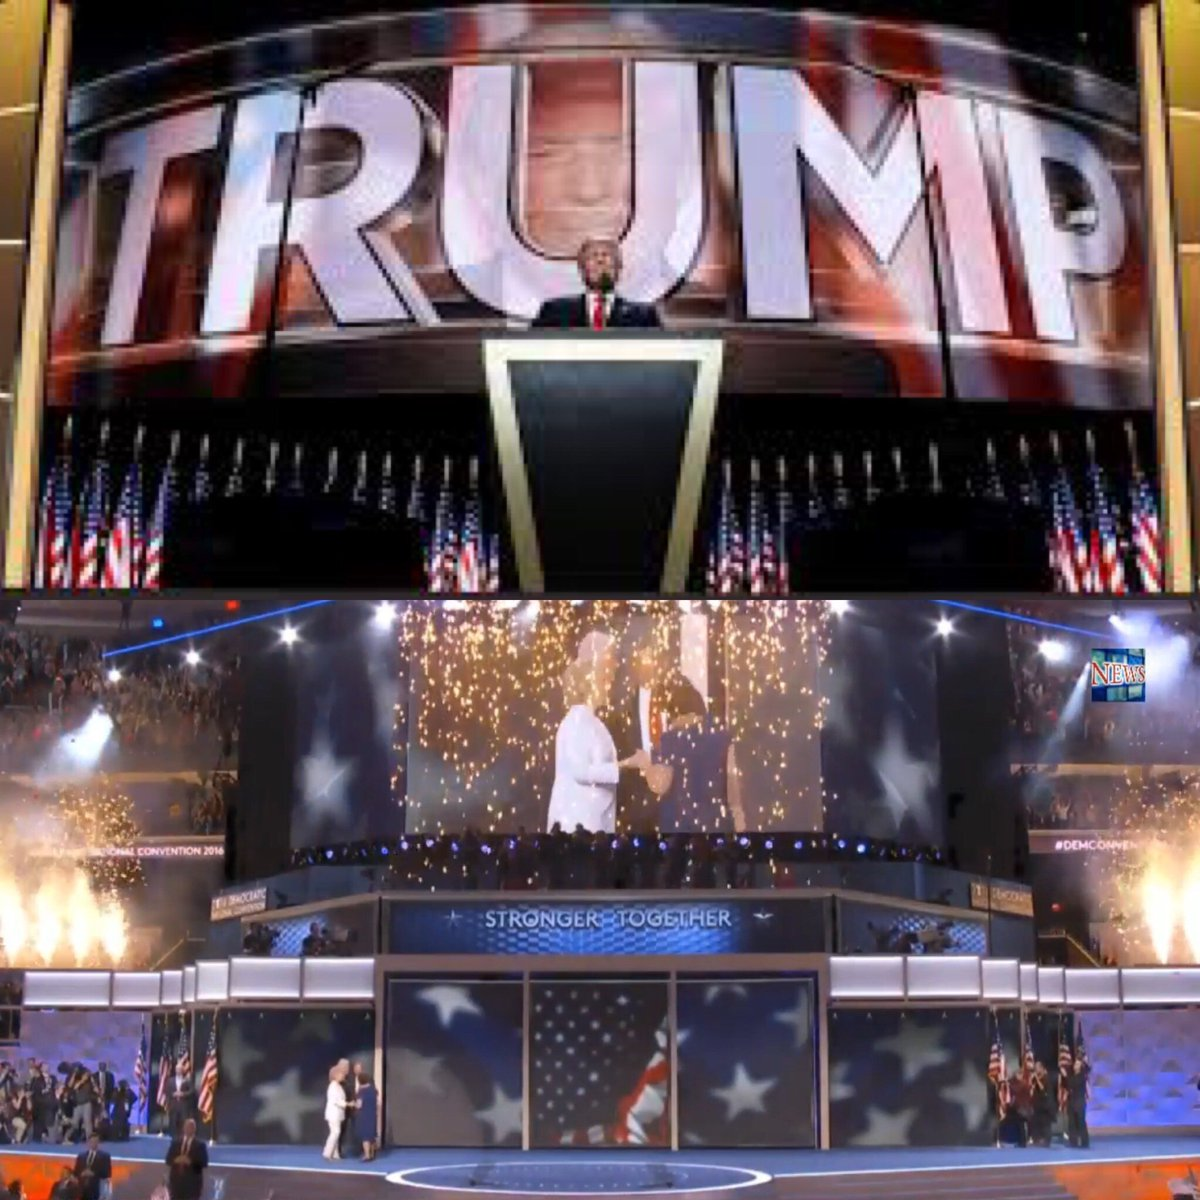 """Shocking how different the stages looked during acceptance speeches. One says """"Together,"""" the other says """"Trump."""" https://t.co/szmaC6EUM2"""